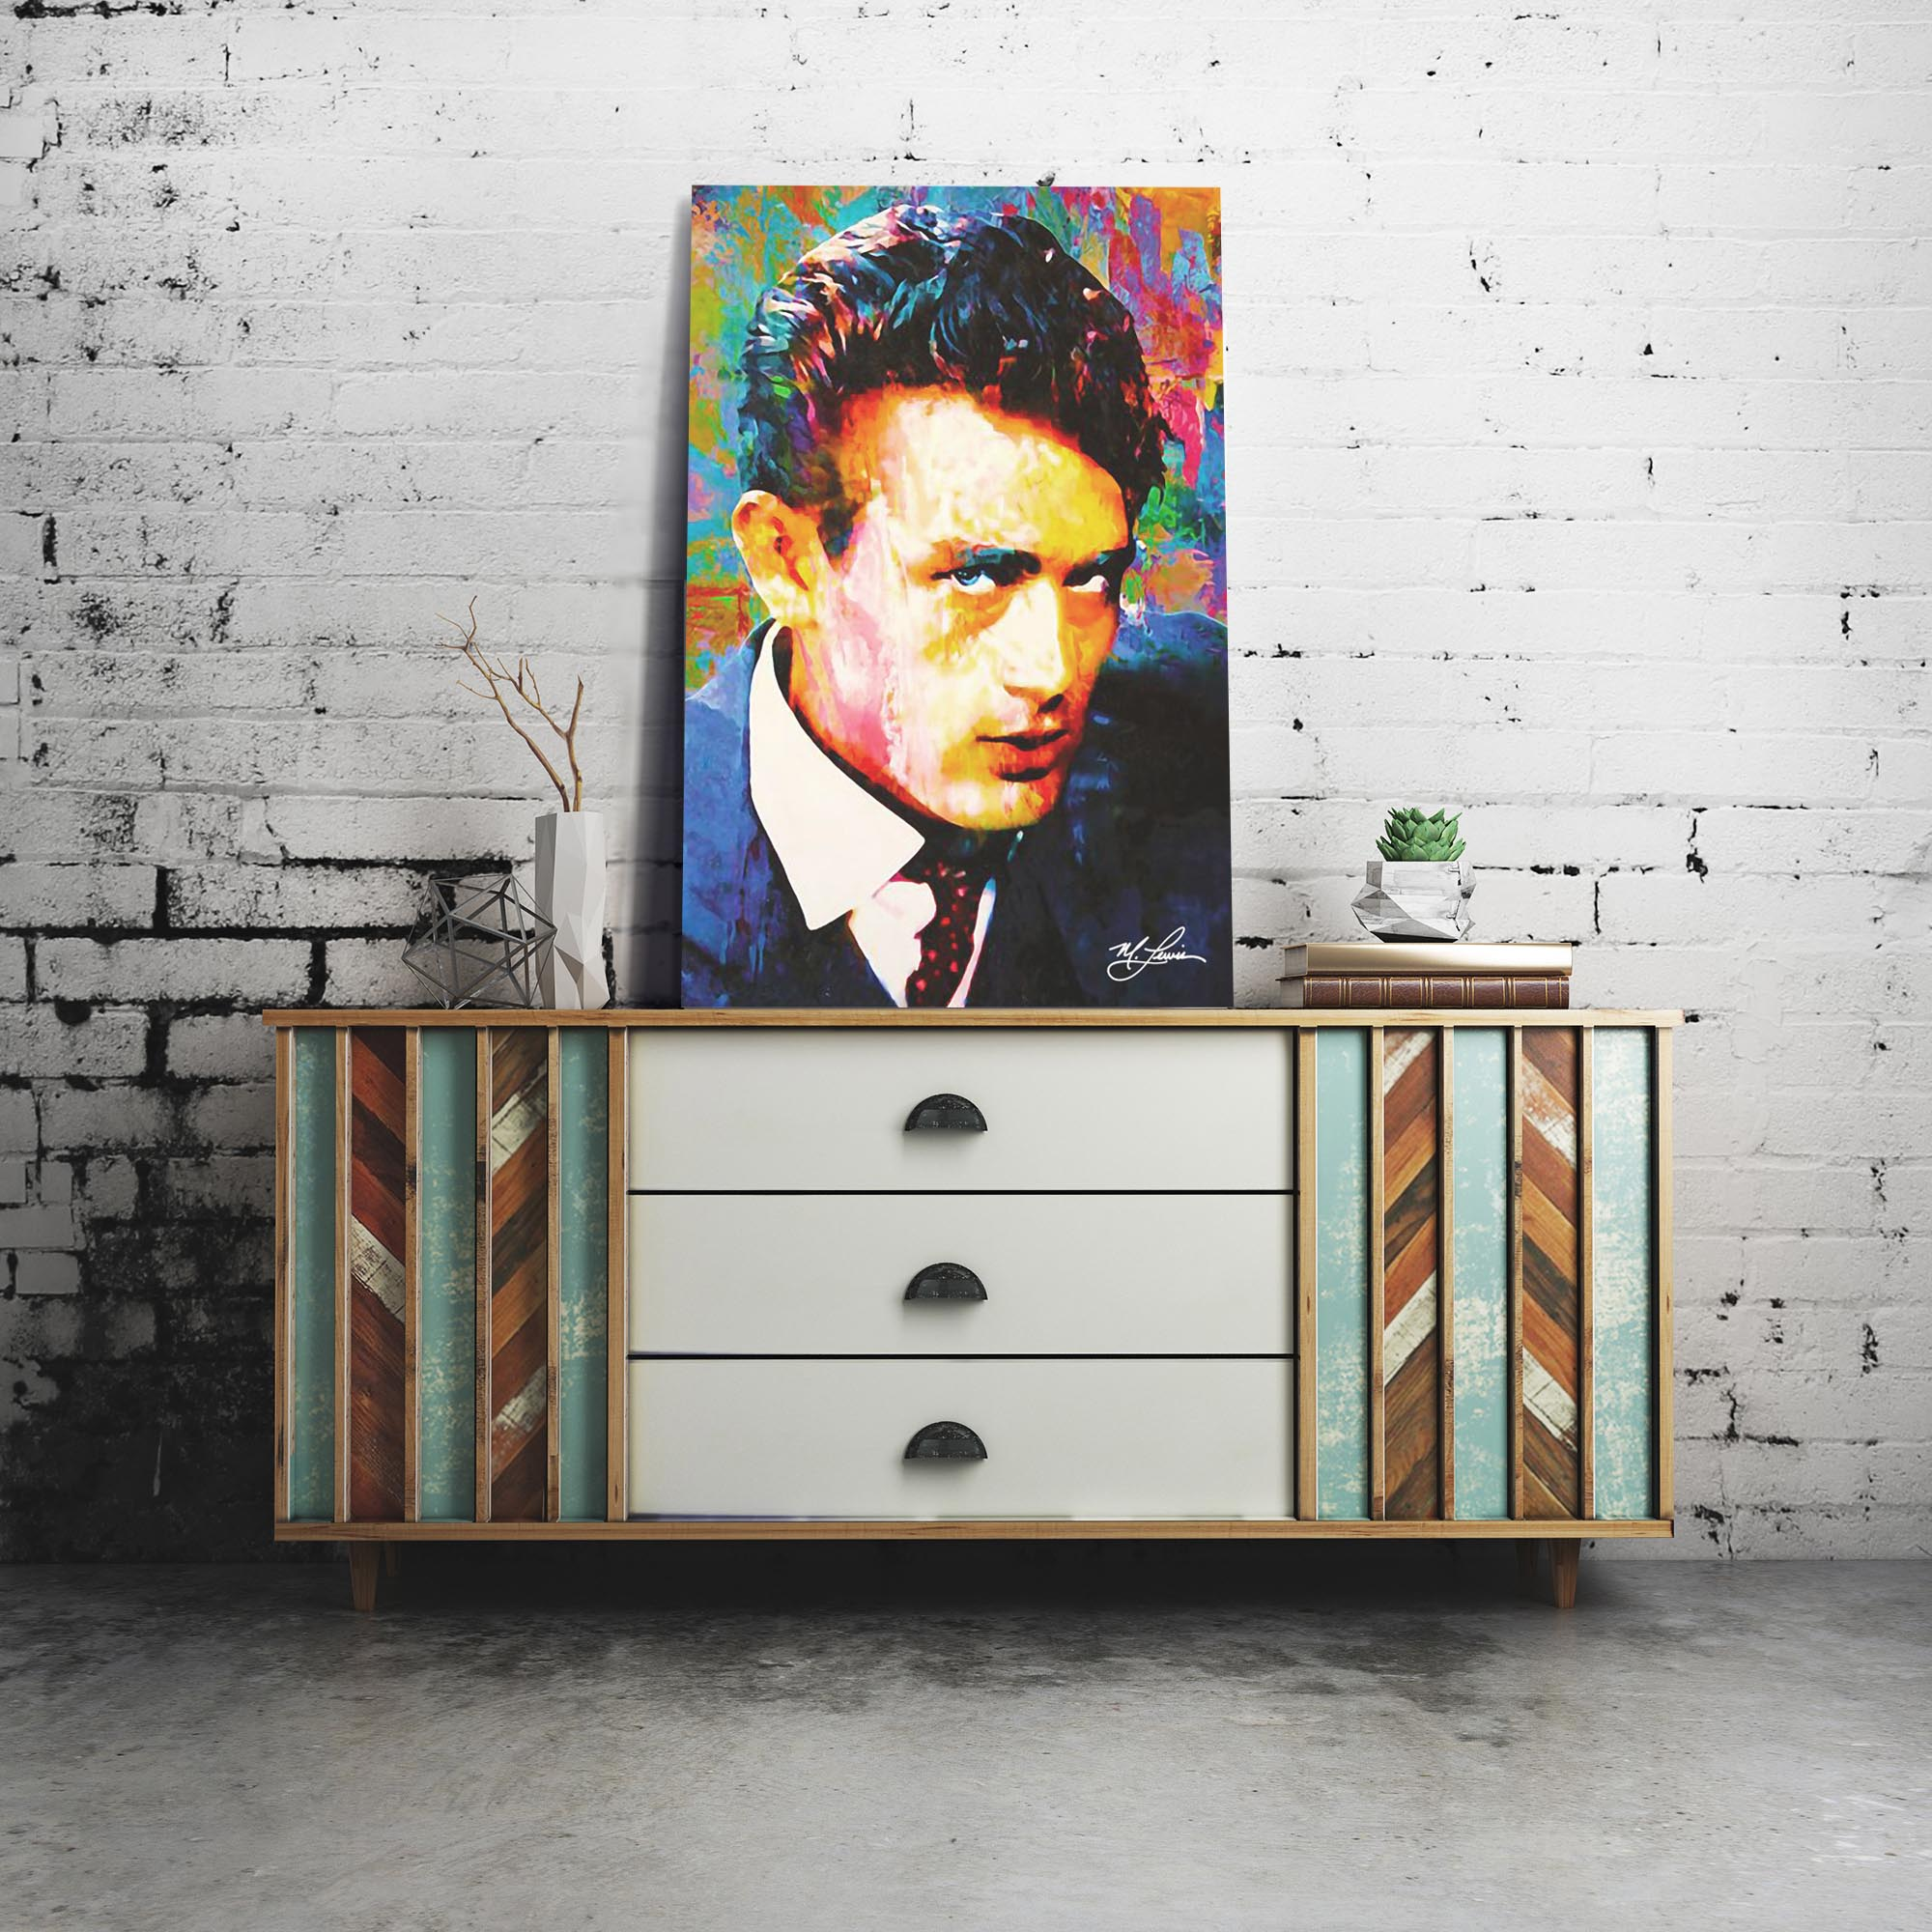 James Dean Lifes Significance 22x32 Metal or Plexiglass Pop Art Portrait - Lifestyle View